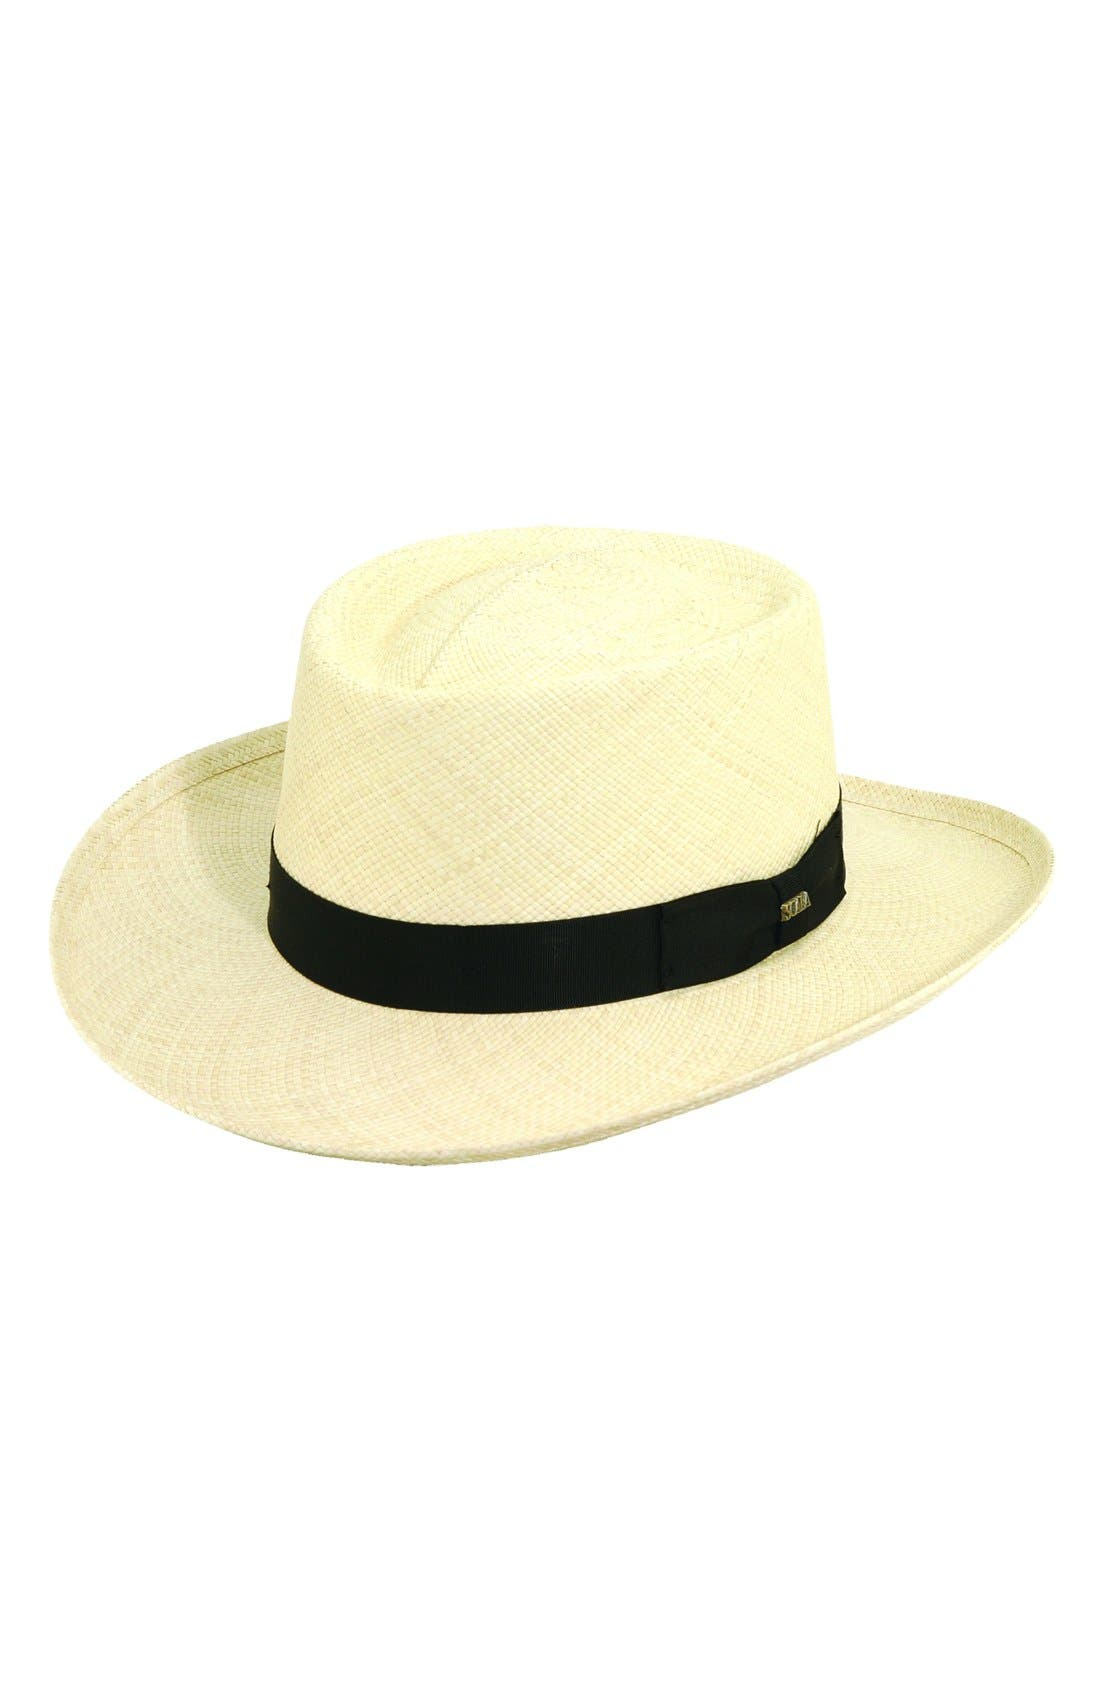 Panama Straw Gambler Hat,                             Main thumbnail 1, color,                             NATURAL